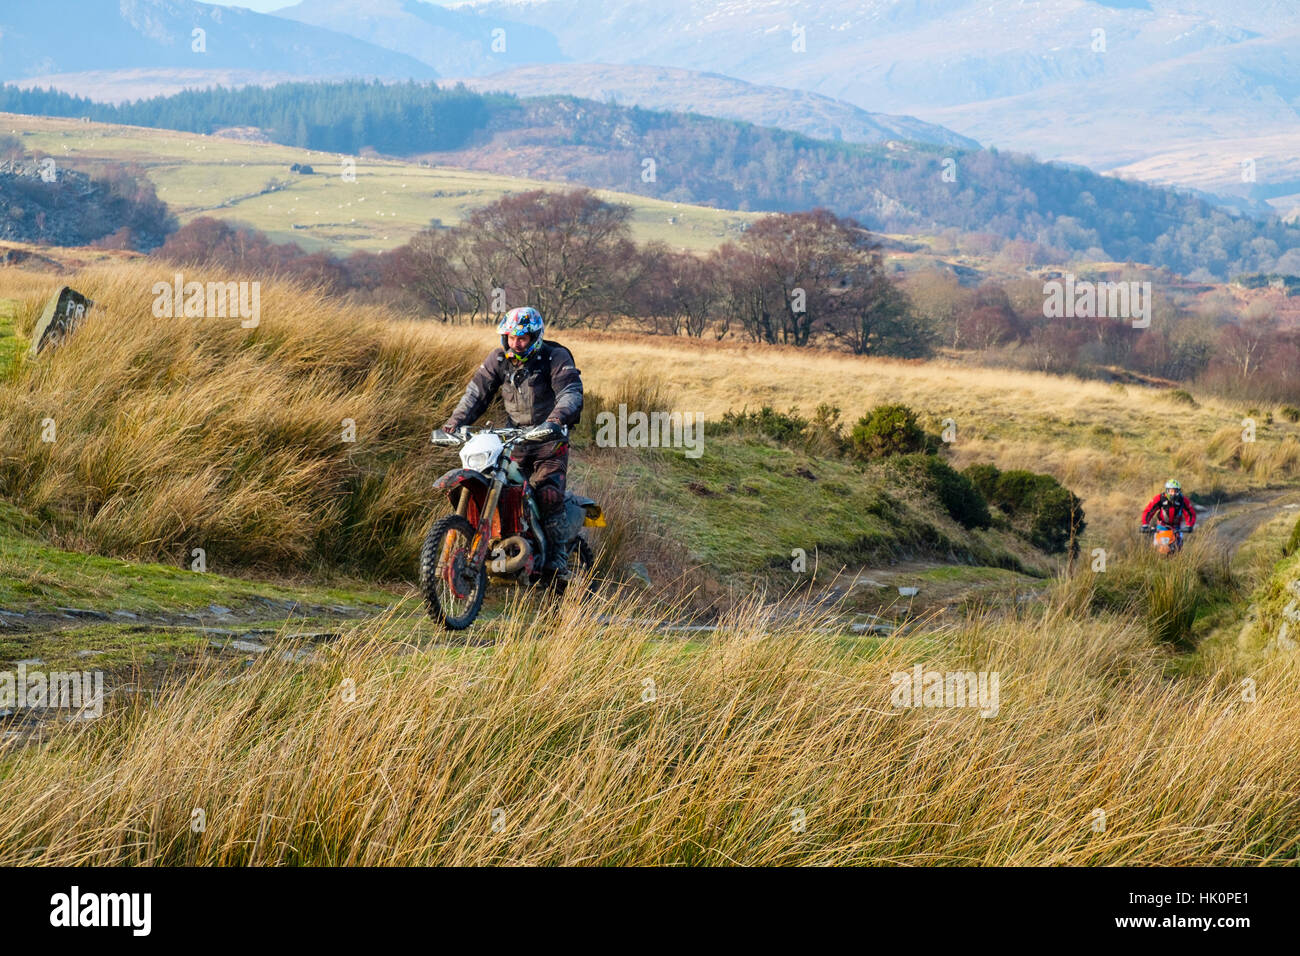 Men riding a dirt bike on a multi-use country track in Snowdonia National Park. Capel Curig, Conwy, Wales, UK, Britain. - Stock Image